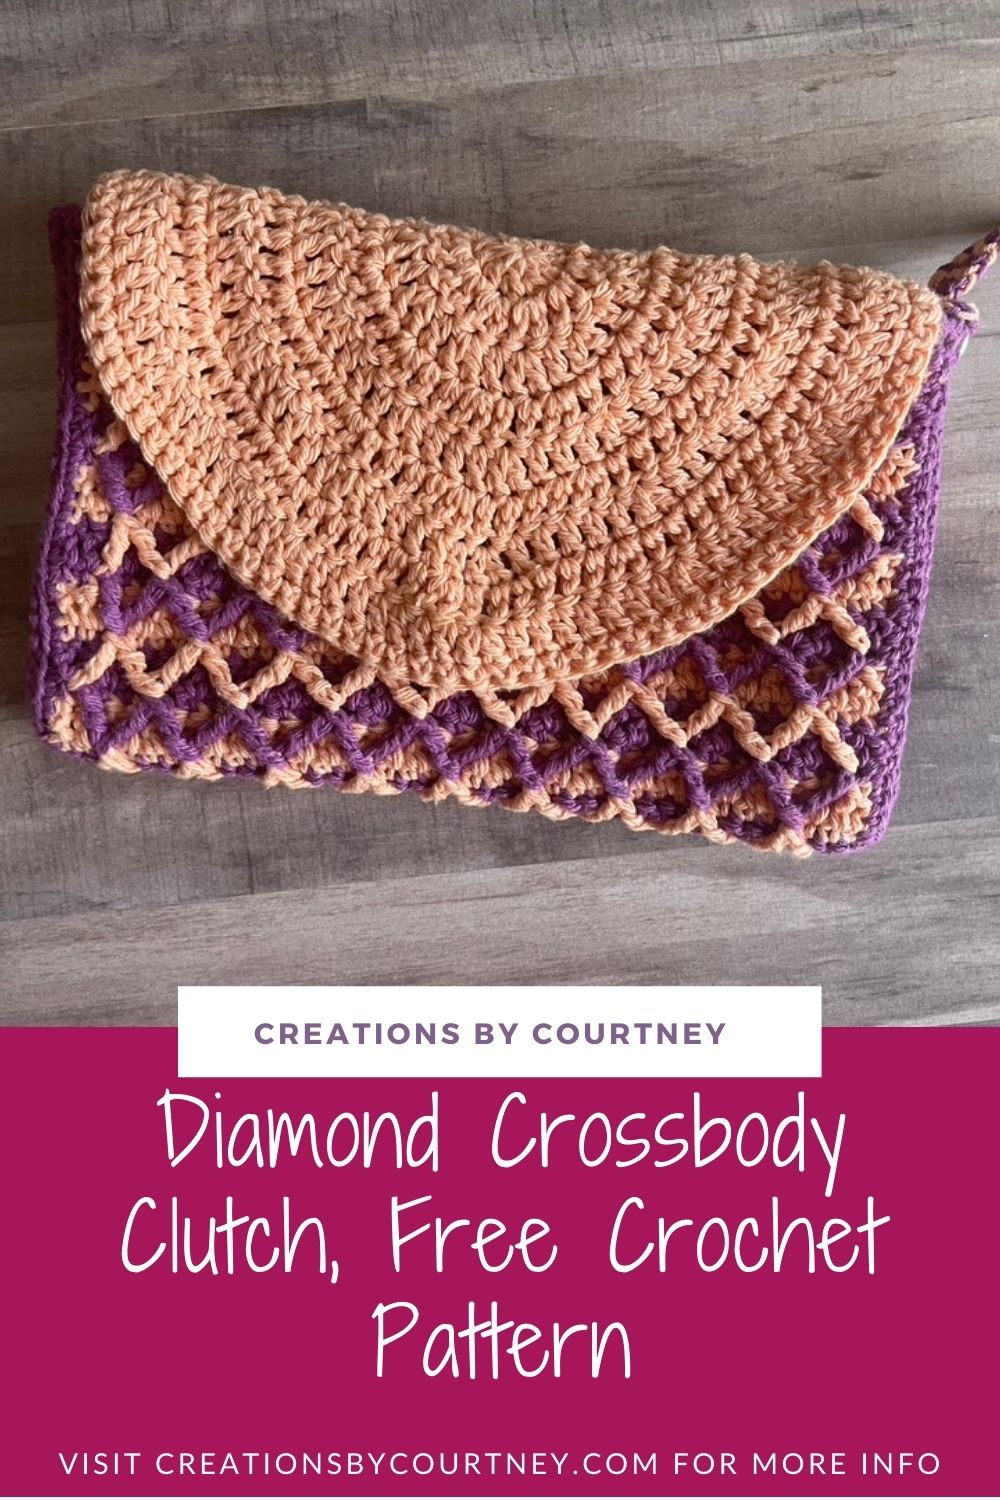 The Diamond Crossbody Clutch is a free crochet pattern. You will create lots of texture and a fun striping pattern with two colors of worsted weight cotton. With two strap options, wrist and crossbody, it's easy to carry your essentials.